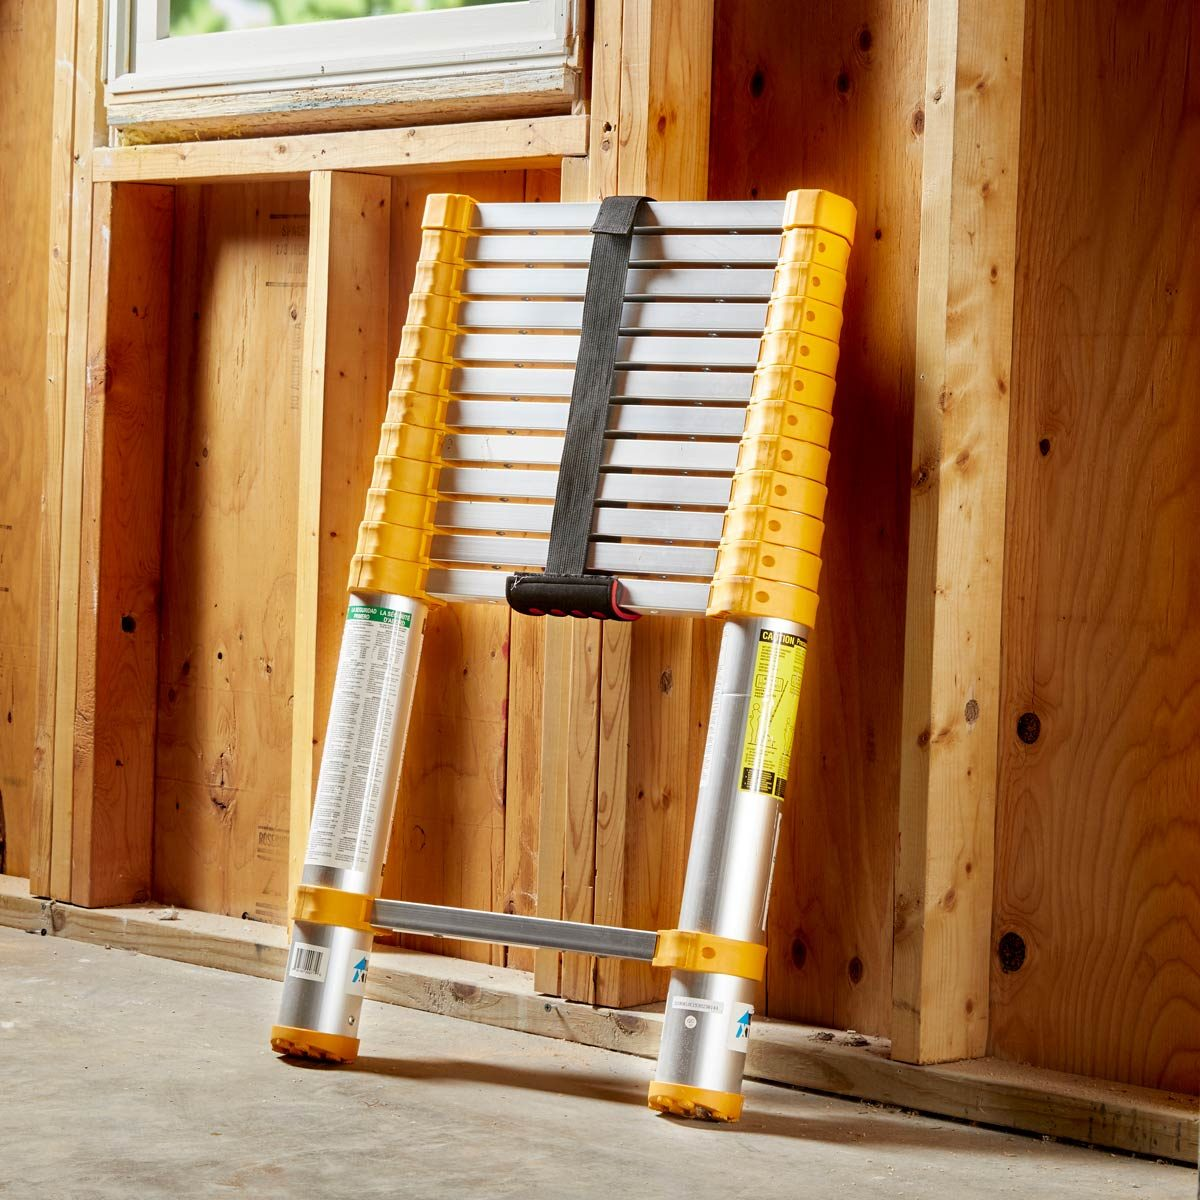 7 Amazing Products for Every Homeowner